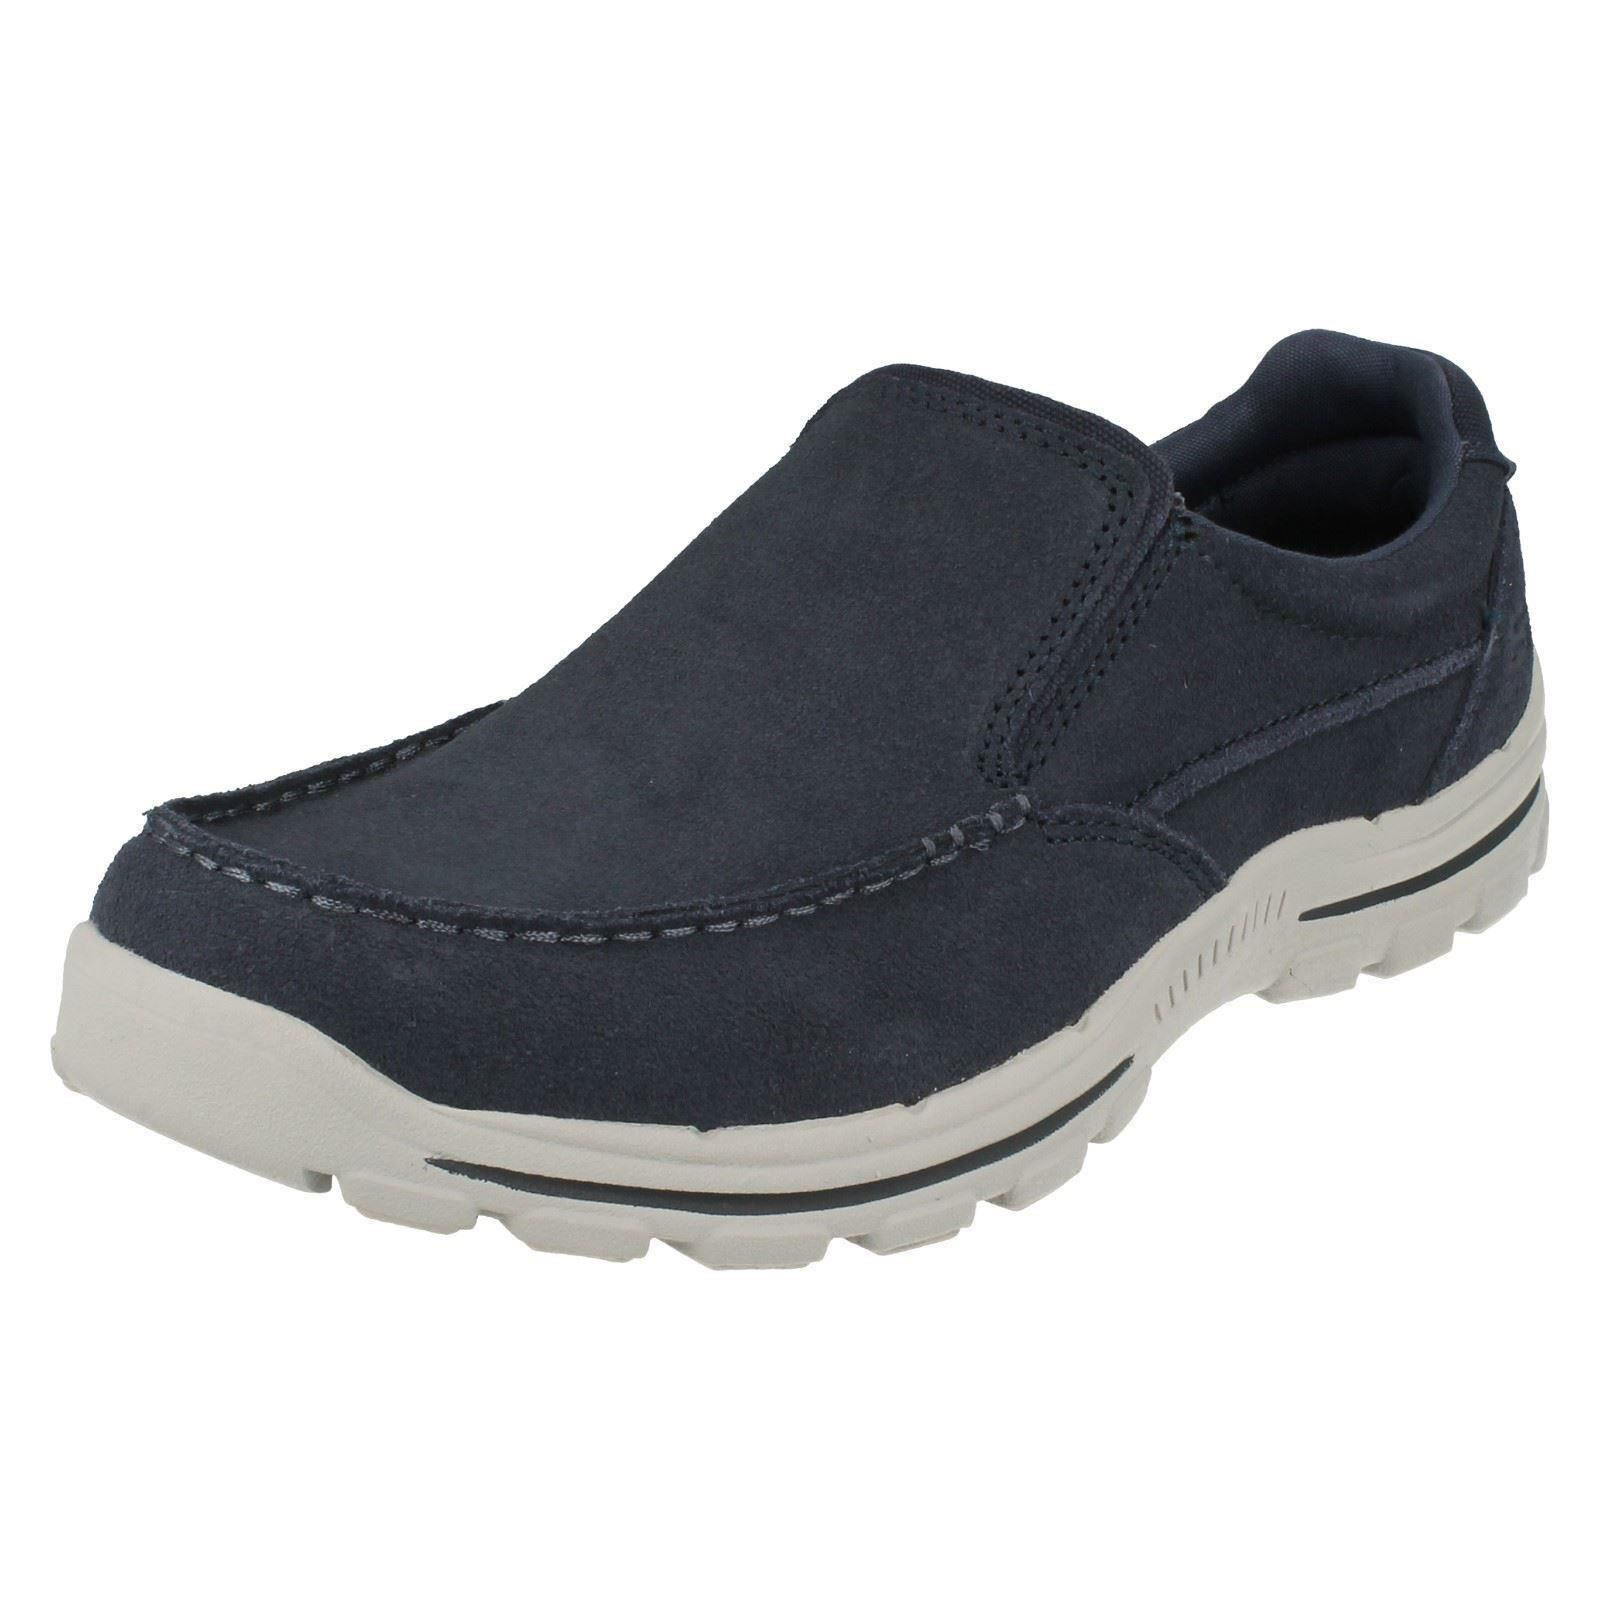 MENS SKECHERS SLIP ON TRAINERS NAVY BLUE MEMORY FOAM TRAINERS ON CASUAL SHOES 64625 NAVID 684fa3